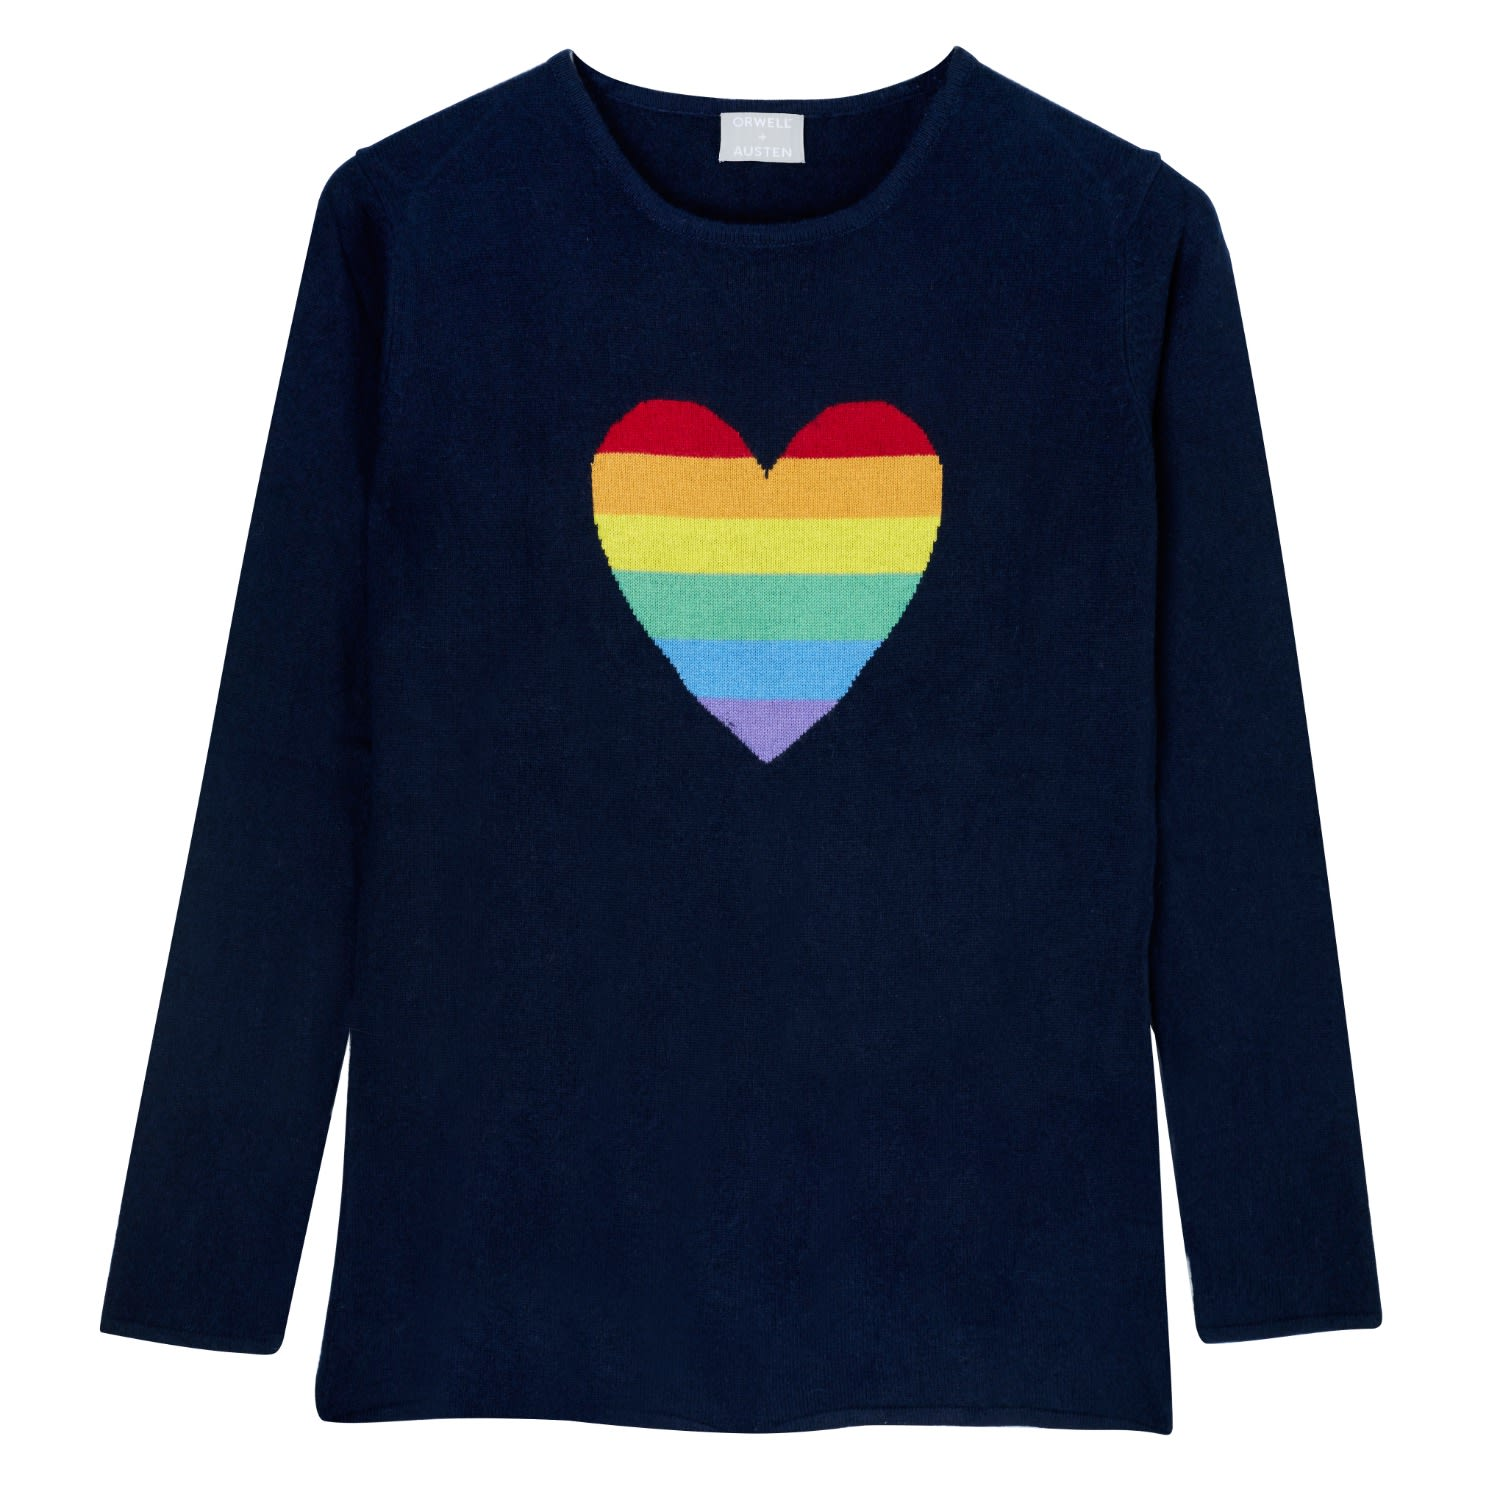 Rainbow Heart Sweater in Navy image af82d48c9